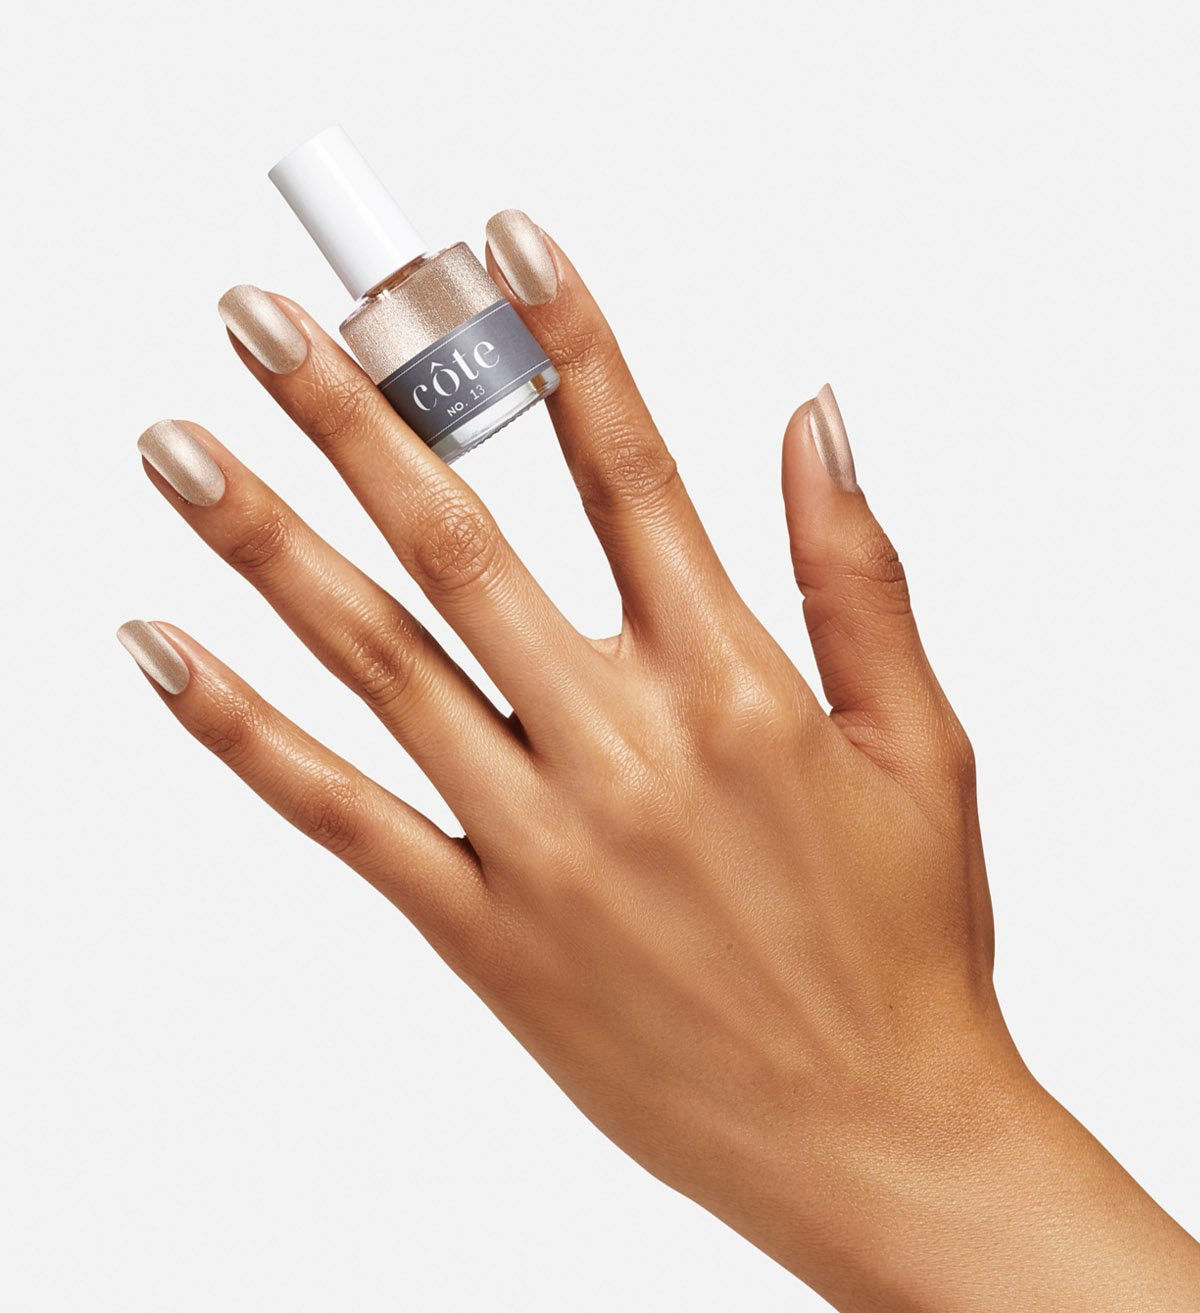 Shop No. 13 Nail Polish by cote - Let's make it a trend #explorebeautiful nailcare and nail polish